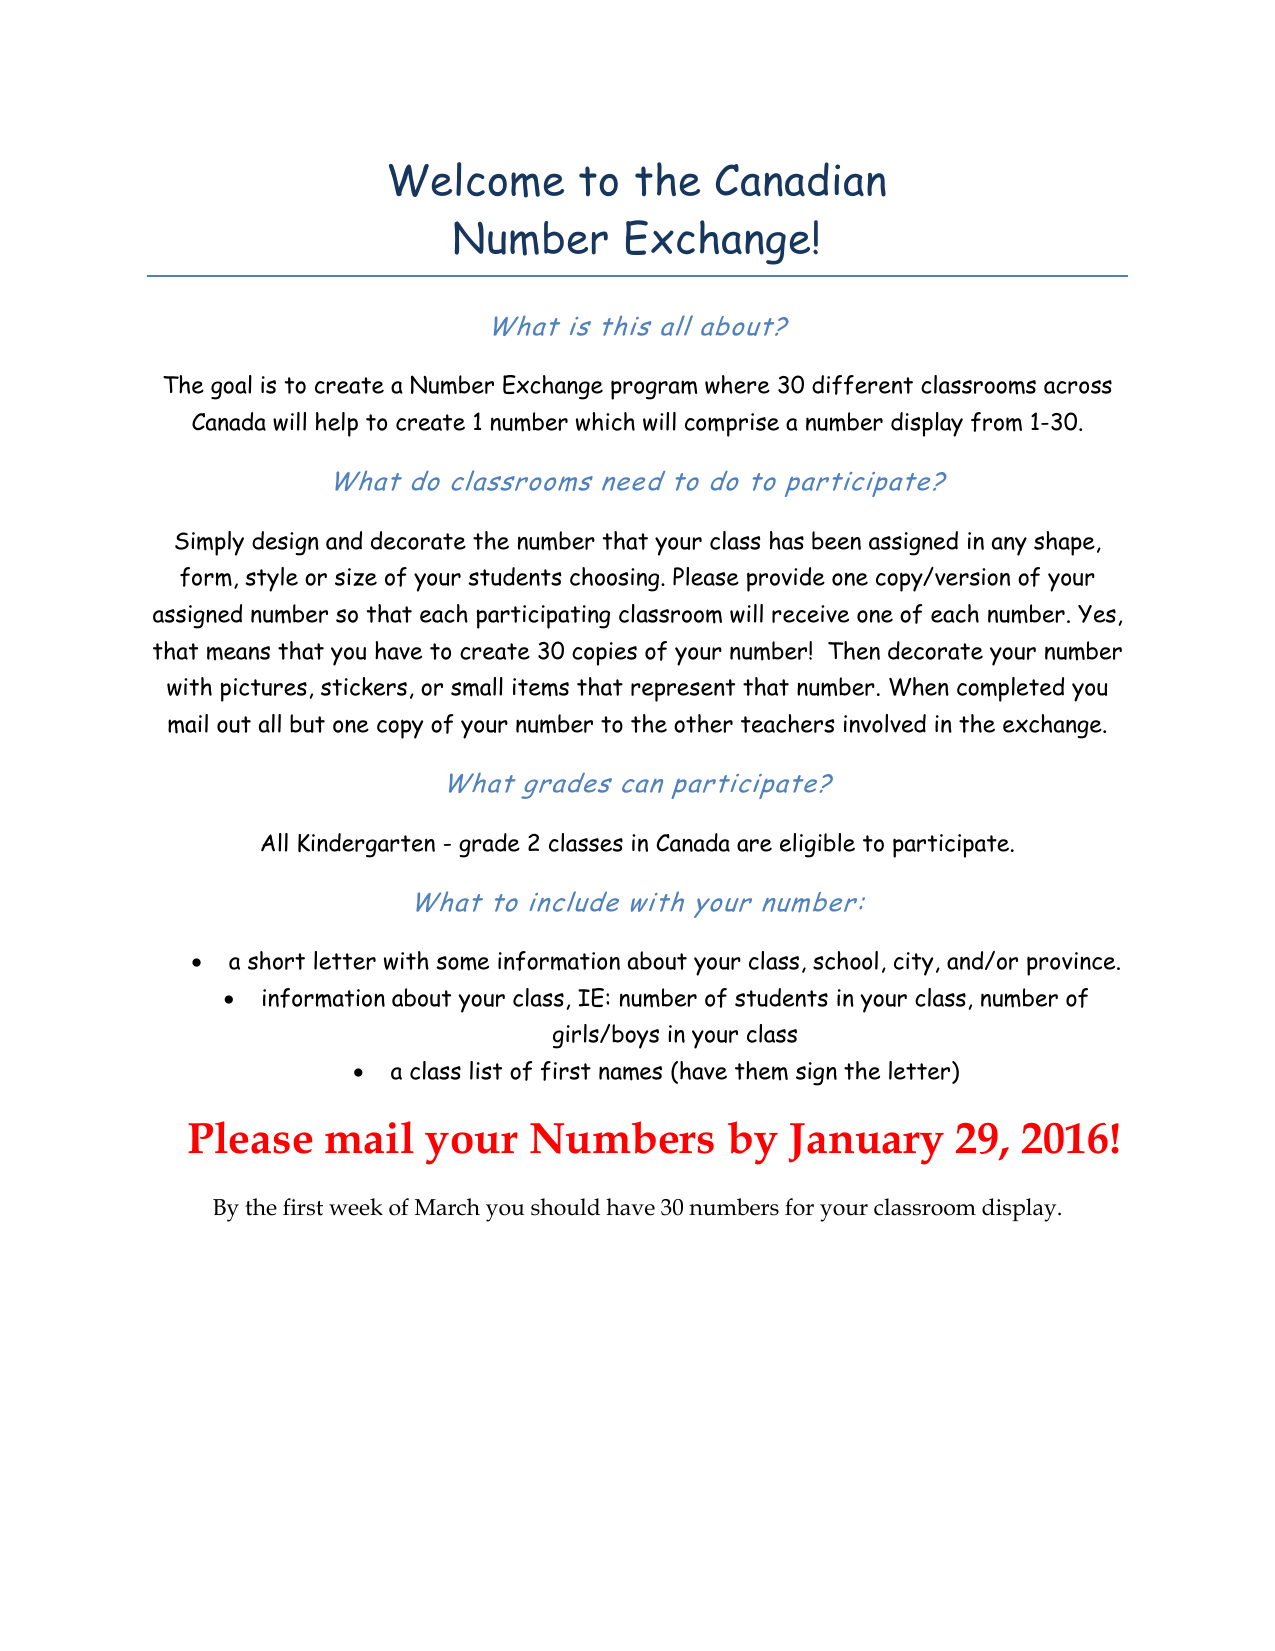 Canadian Number Exchange Info Pack Resource Preview